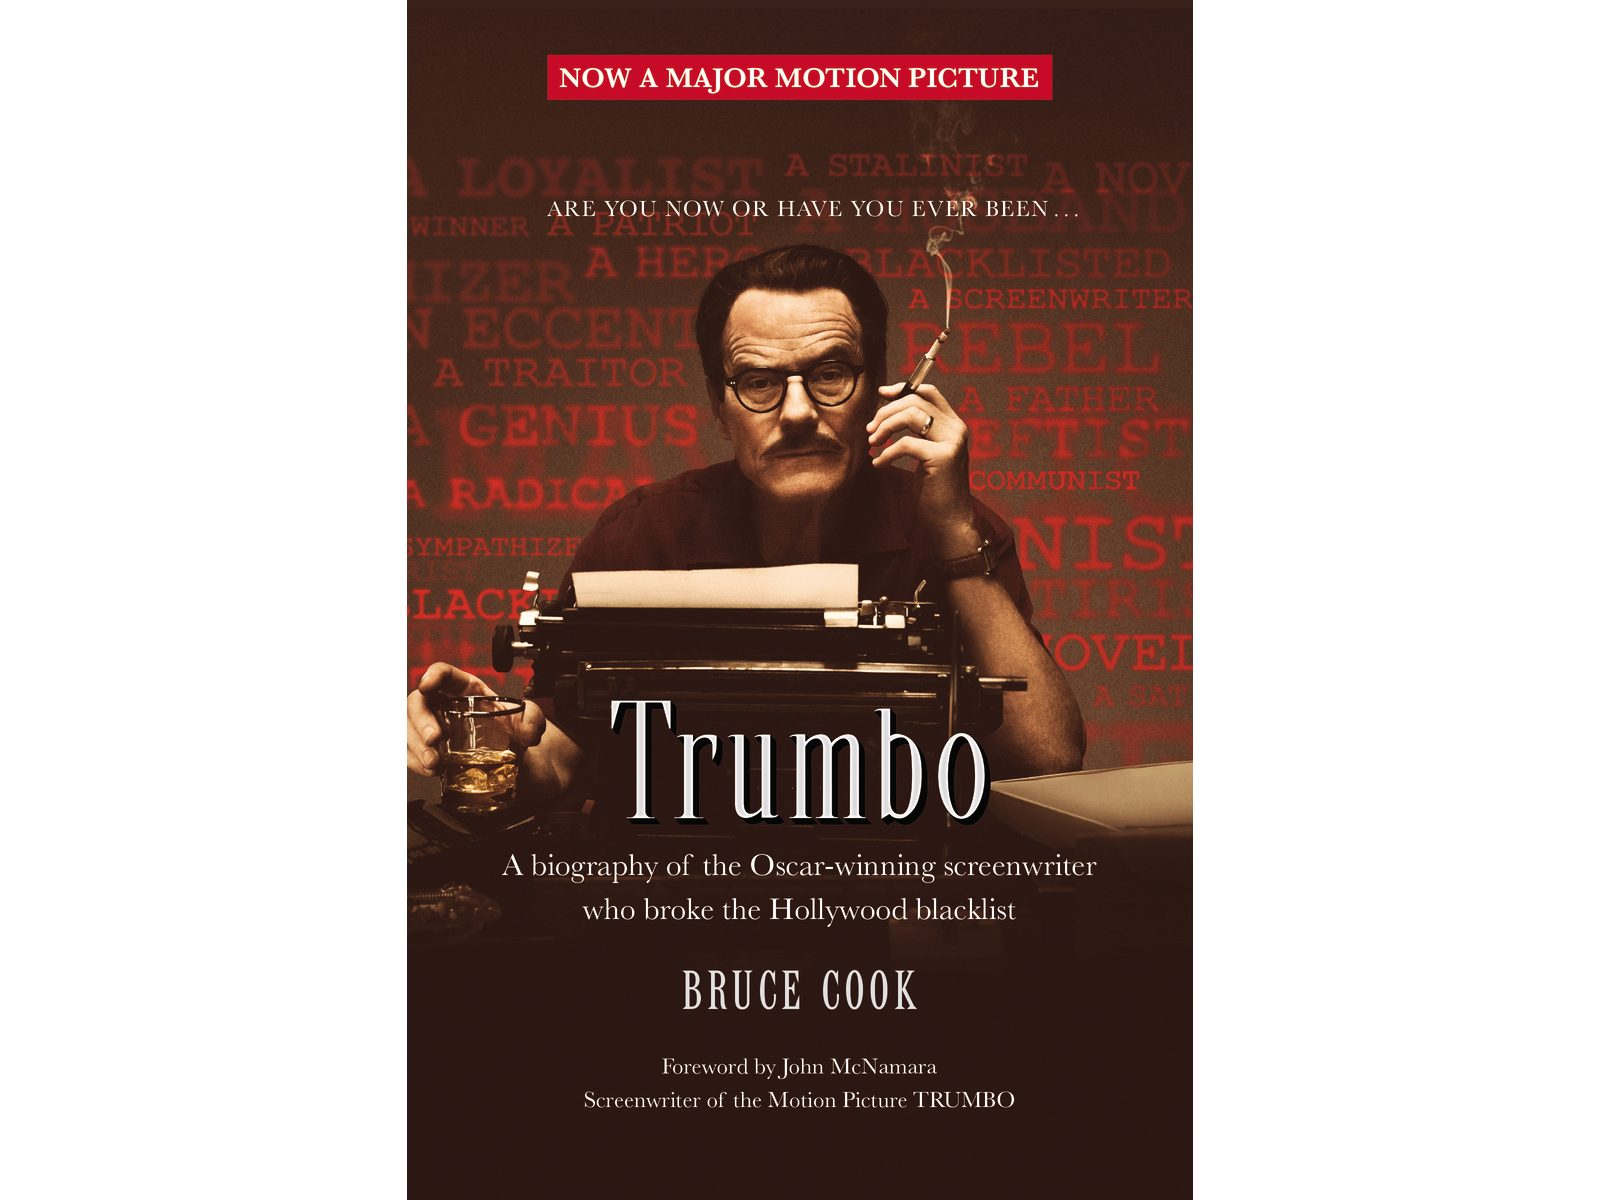 10. Trumbo by Bruce Cook